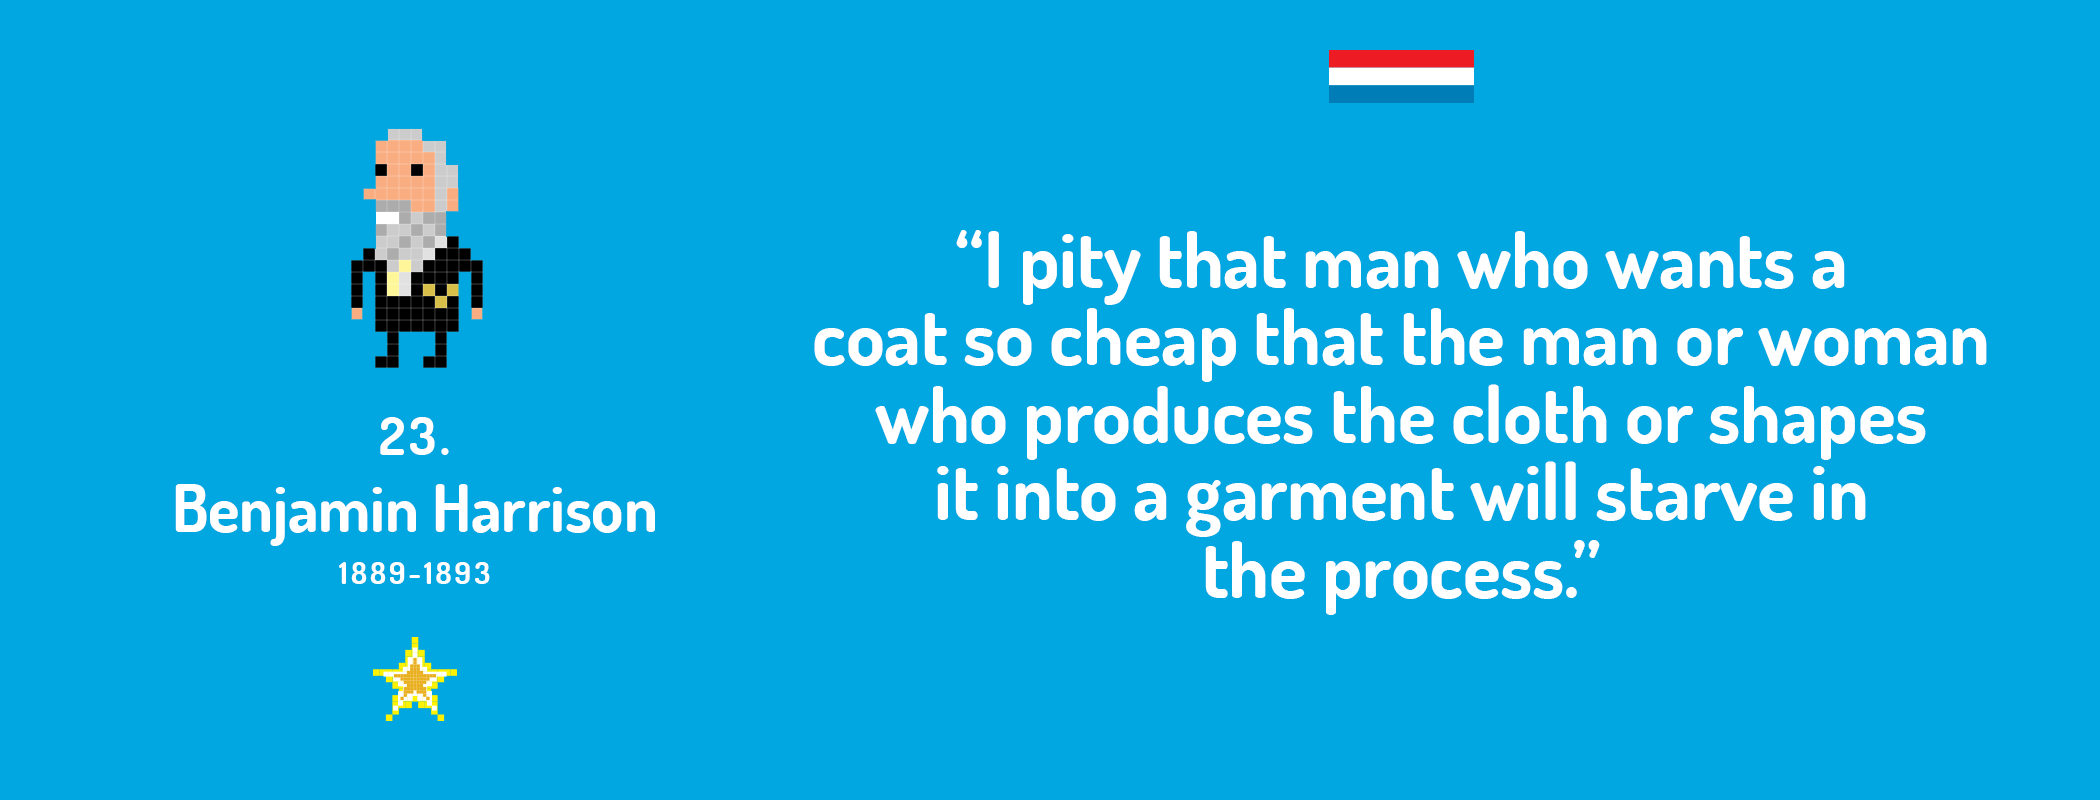 I pity that man who wants a coat so cheap that the man or woman who produces the cloth or shapes it into a garment will starve in the process.